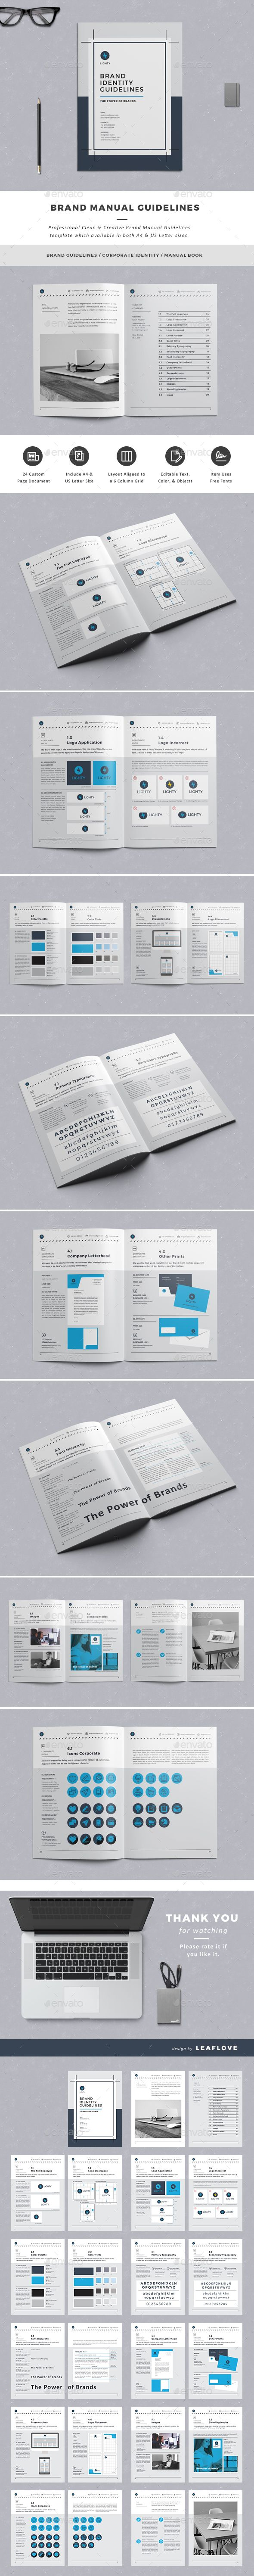 Business Infographic  Brand Manual Guidelines Template Indesign